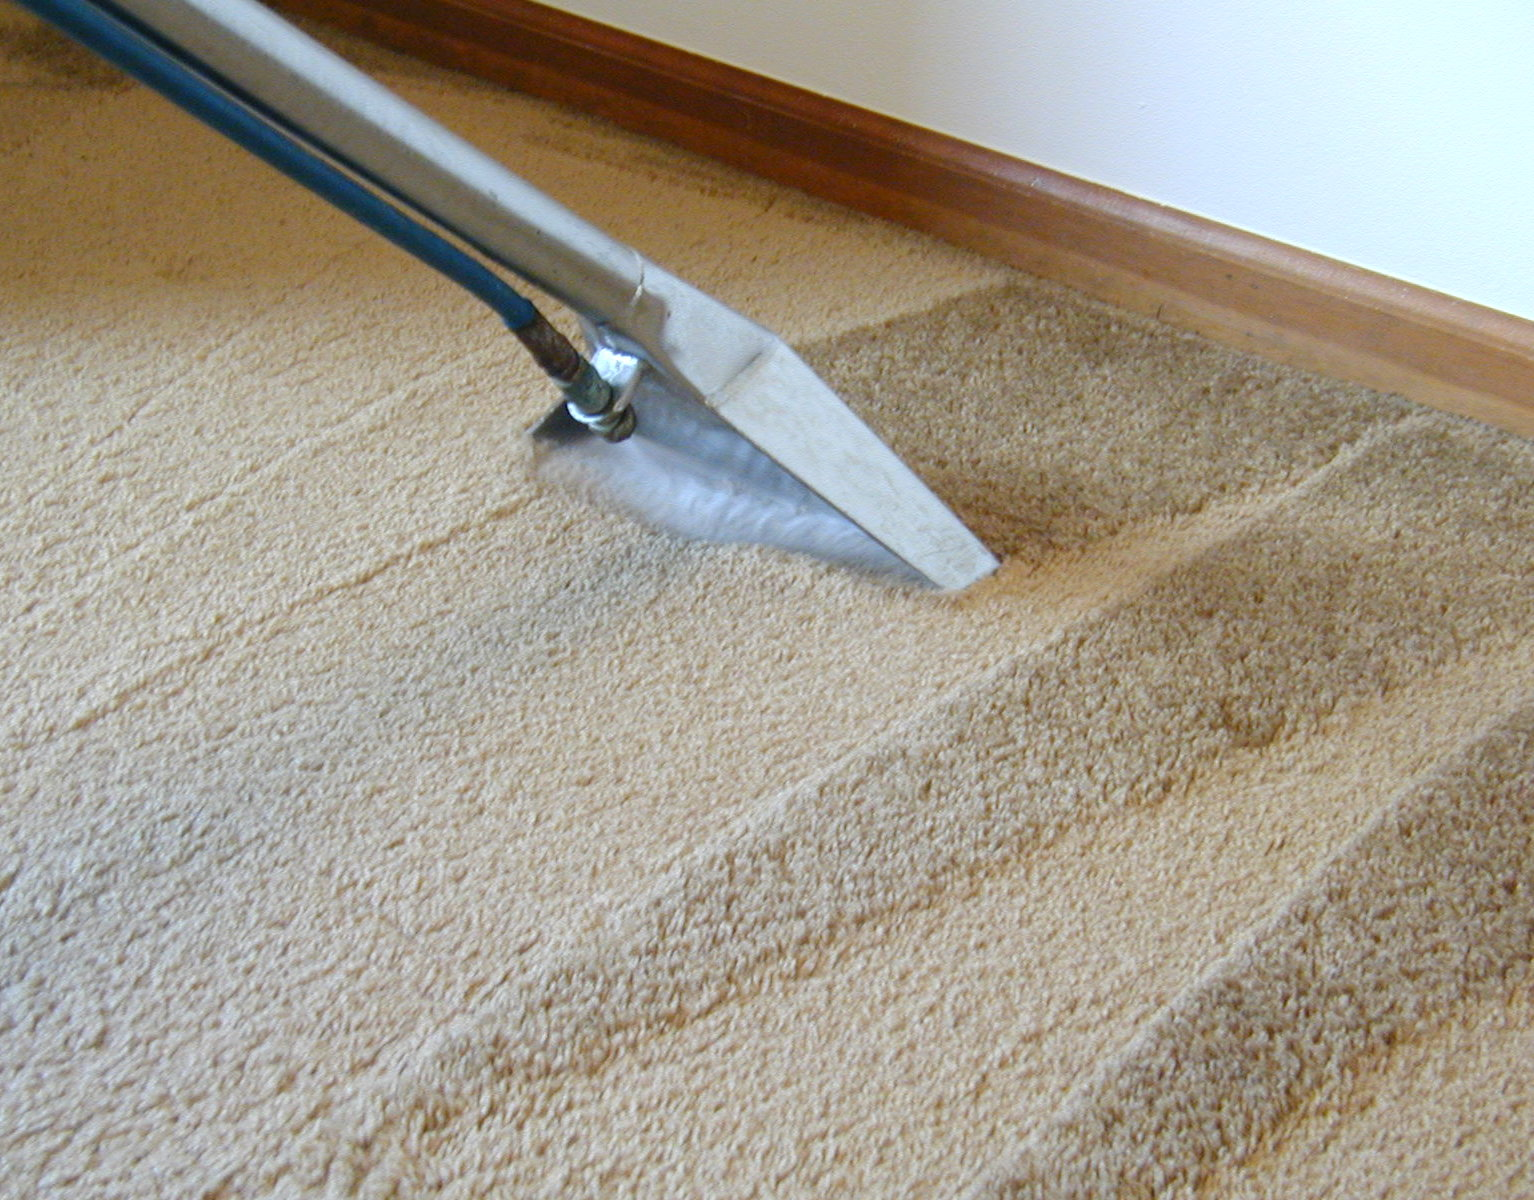 carpet cleaning machines - Website design for Cheshire based carpet, upholstery and floor cleaning company